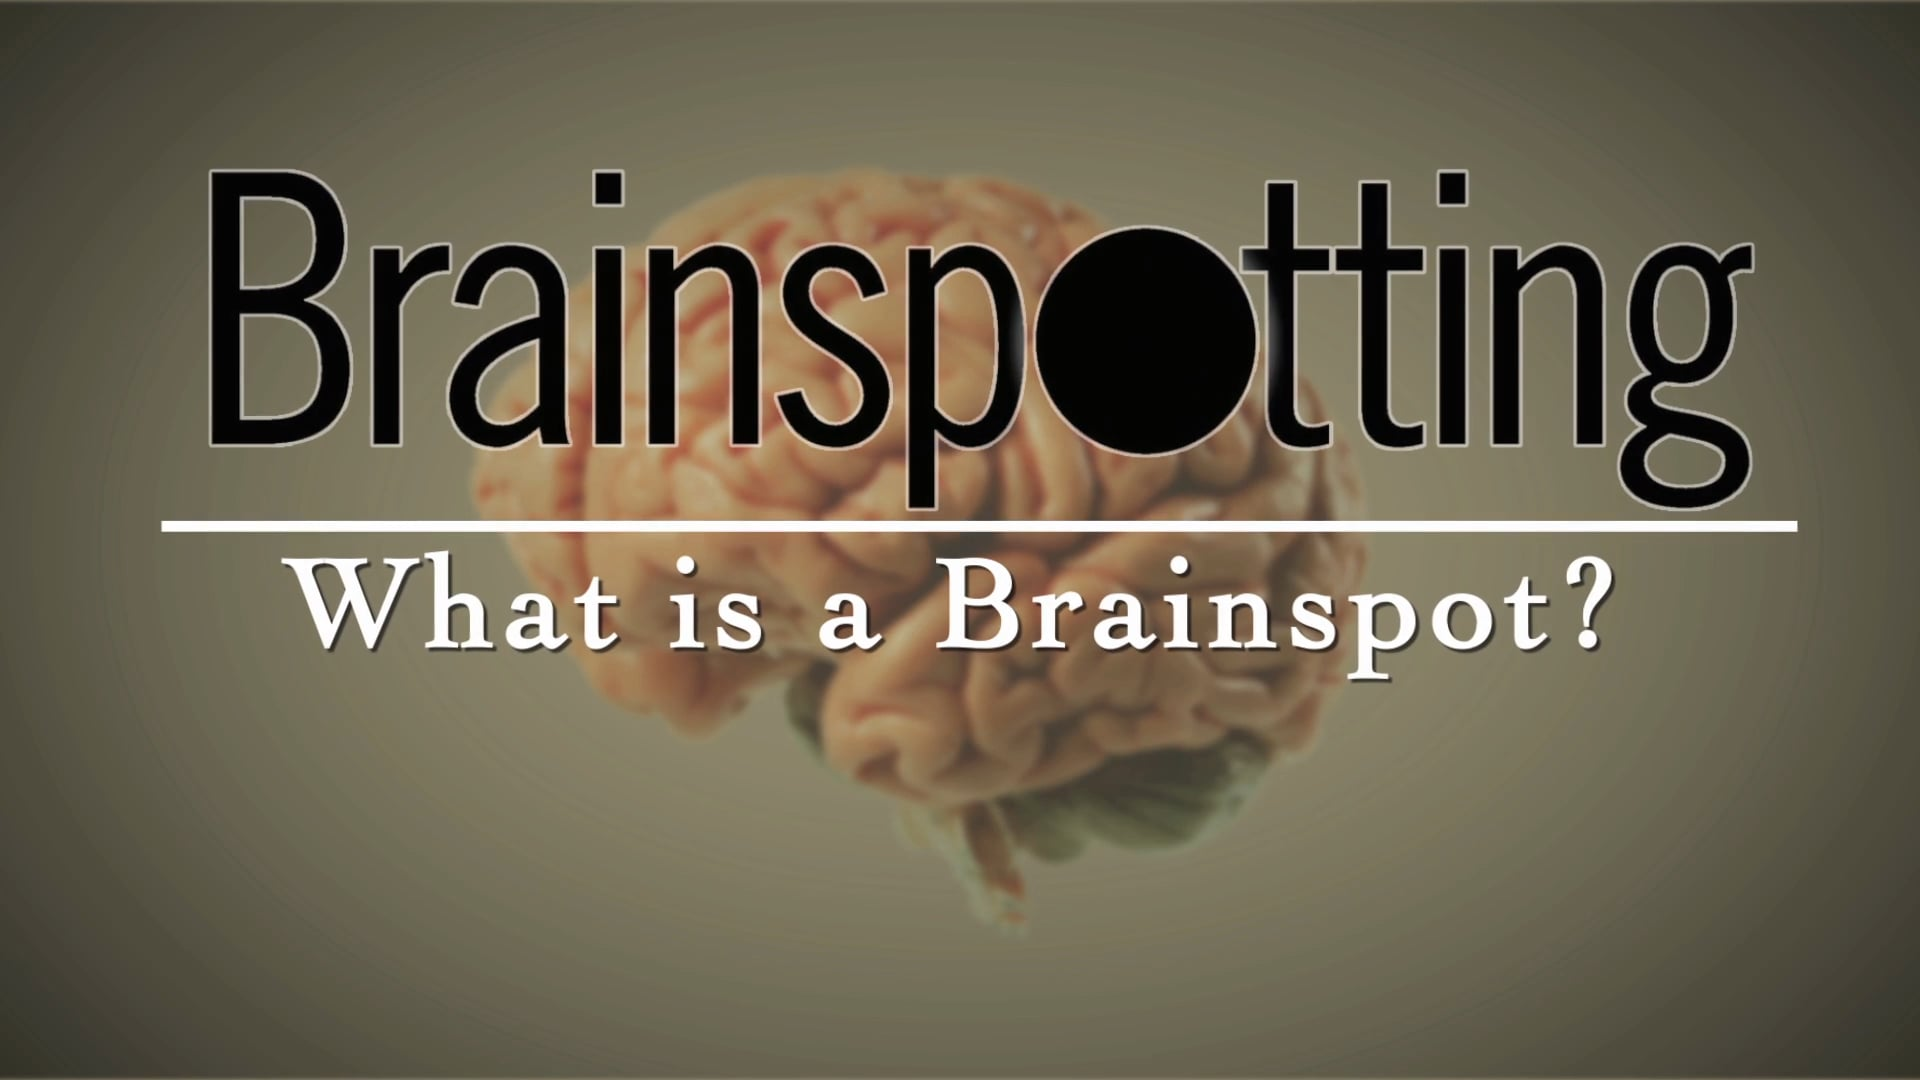 What is a Brainspot?